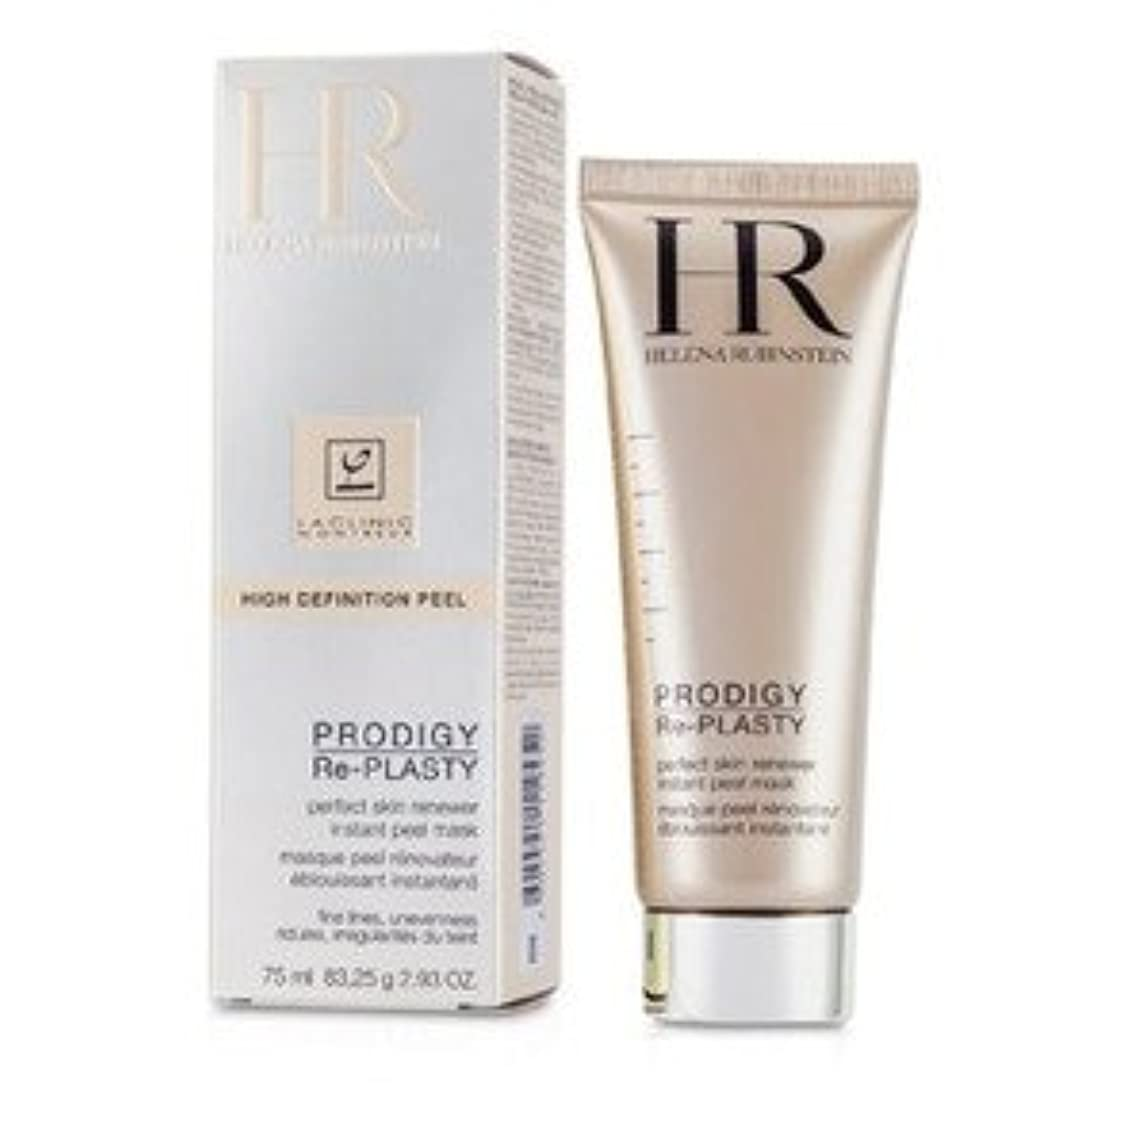 追い払う音声学Helena Rubinstein(ヘレナ?ルビンスタイン) Prodigy Re-Plasty High Definition Peel Perfect Skin Renewer Instant Peel Mask 75ml...